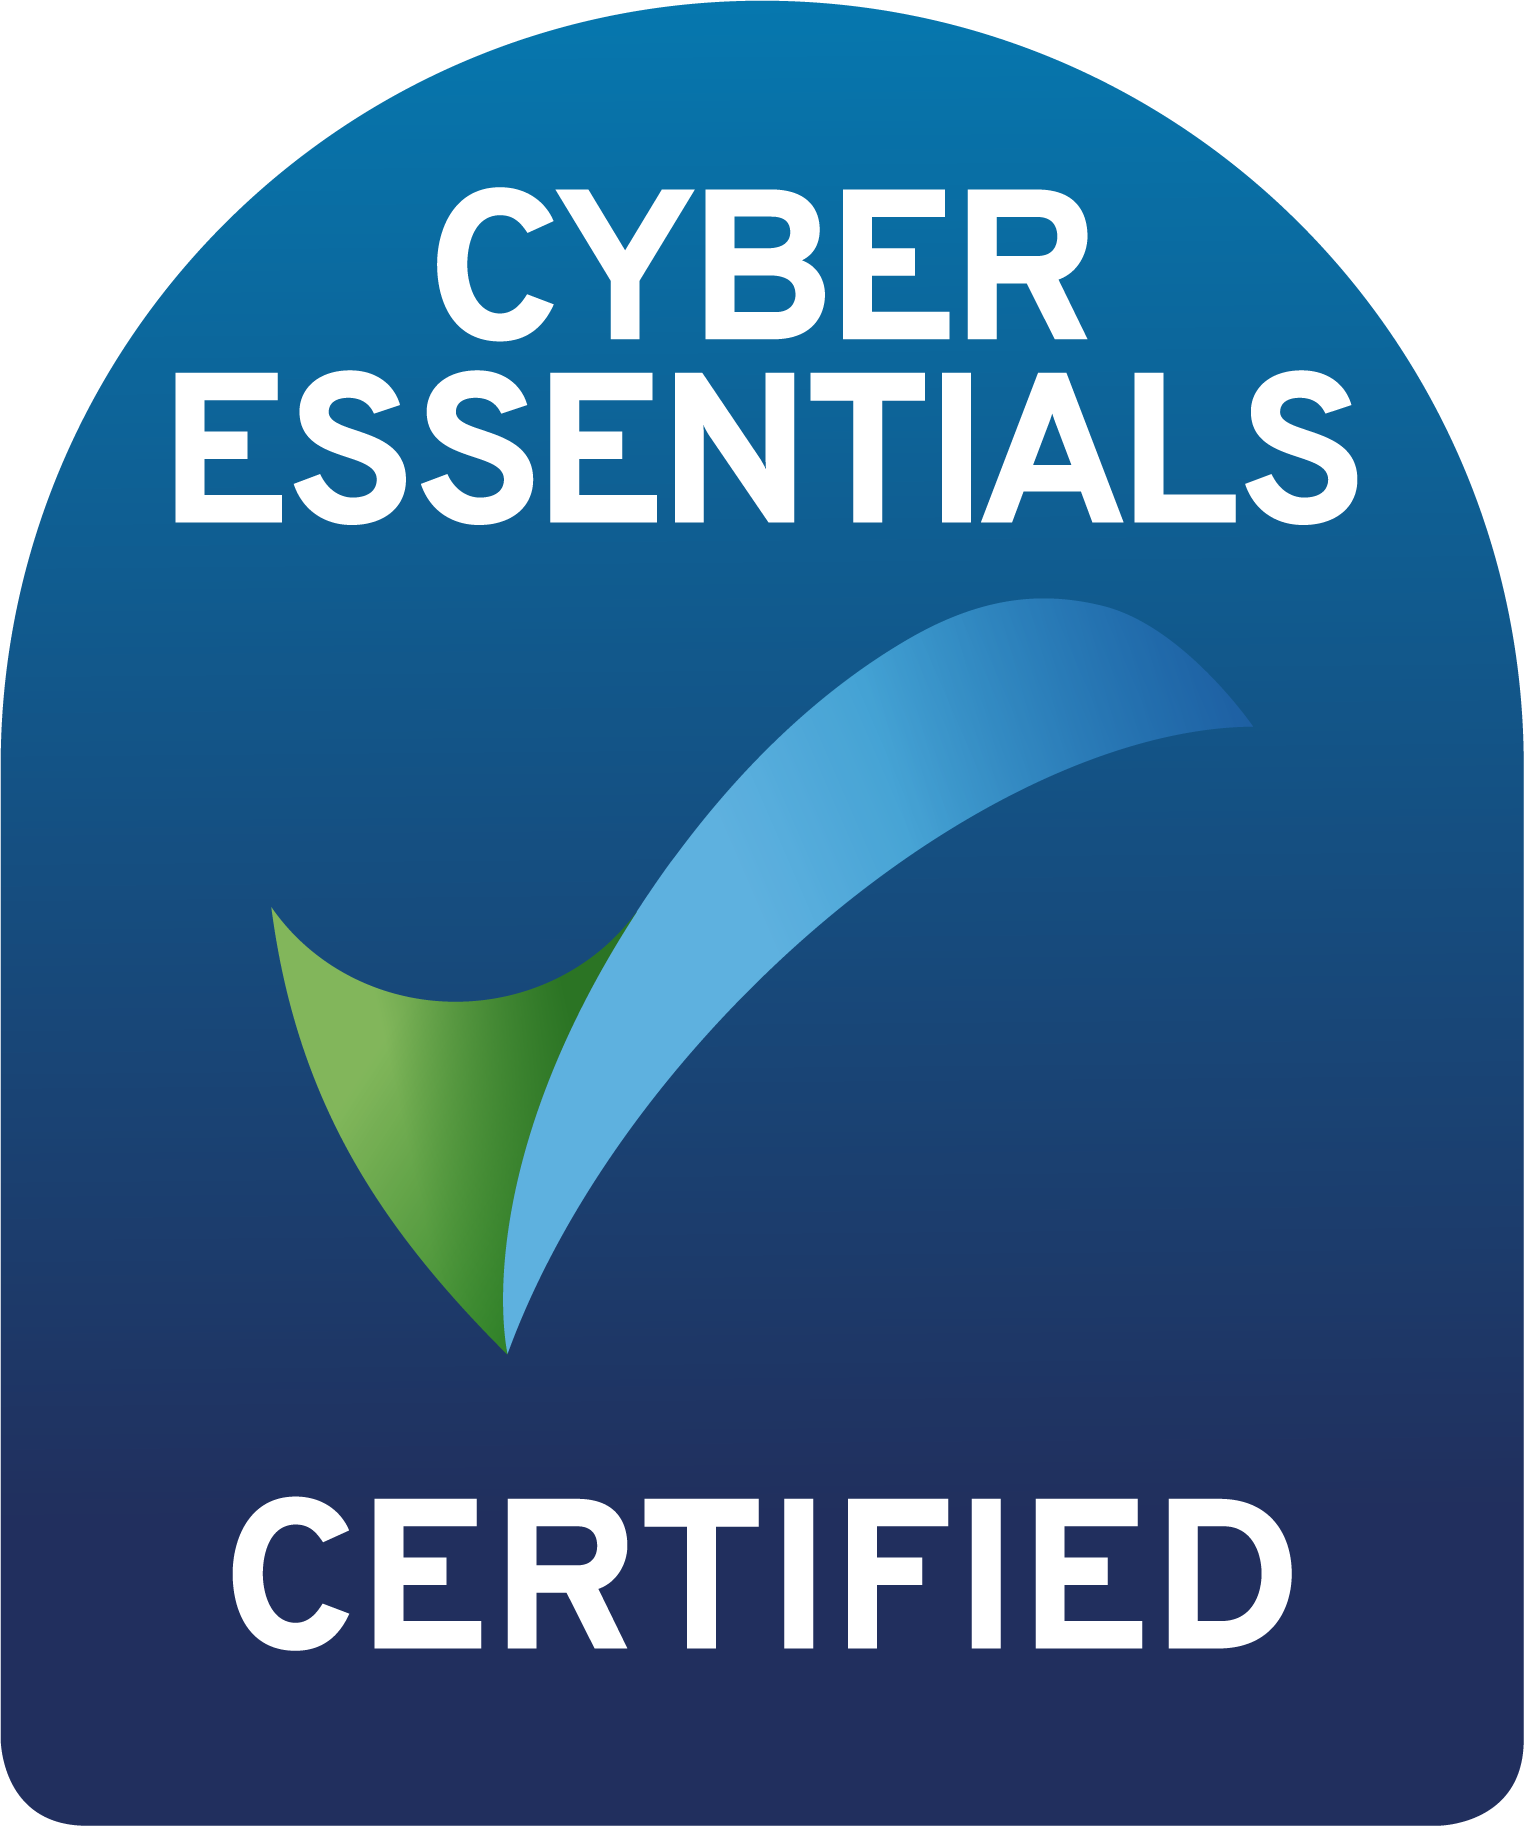 cyberessentials certification mark colour